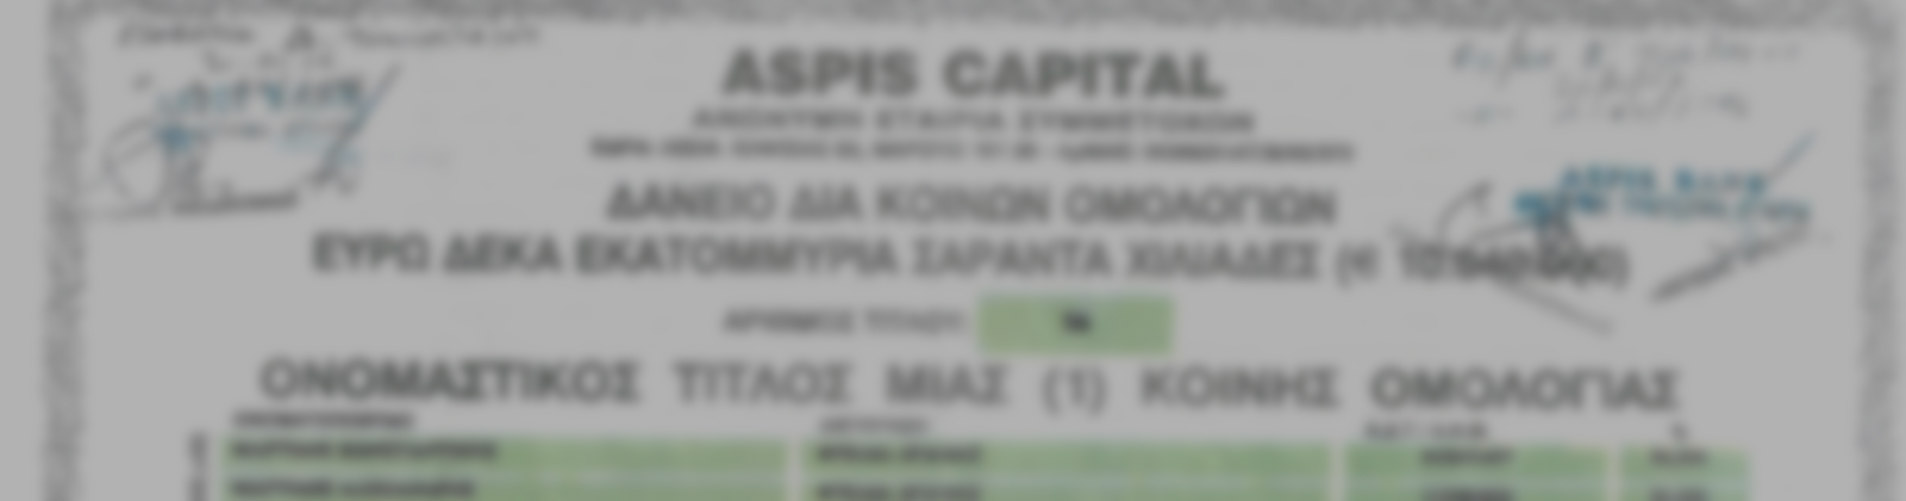 ASPIS Capital Bonds Case